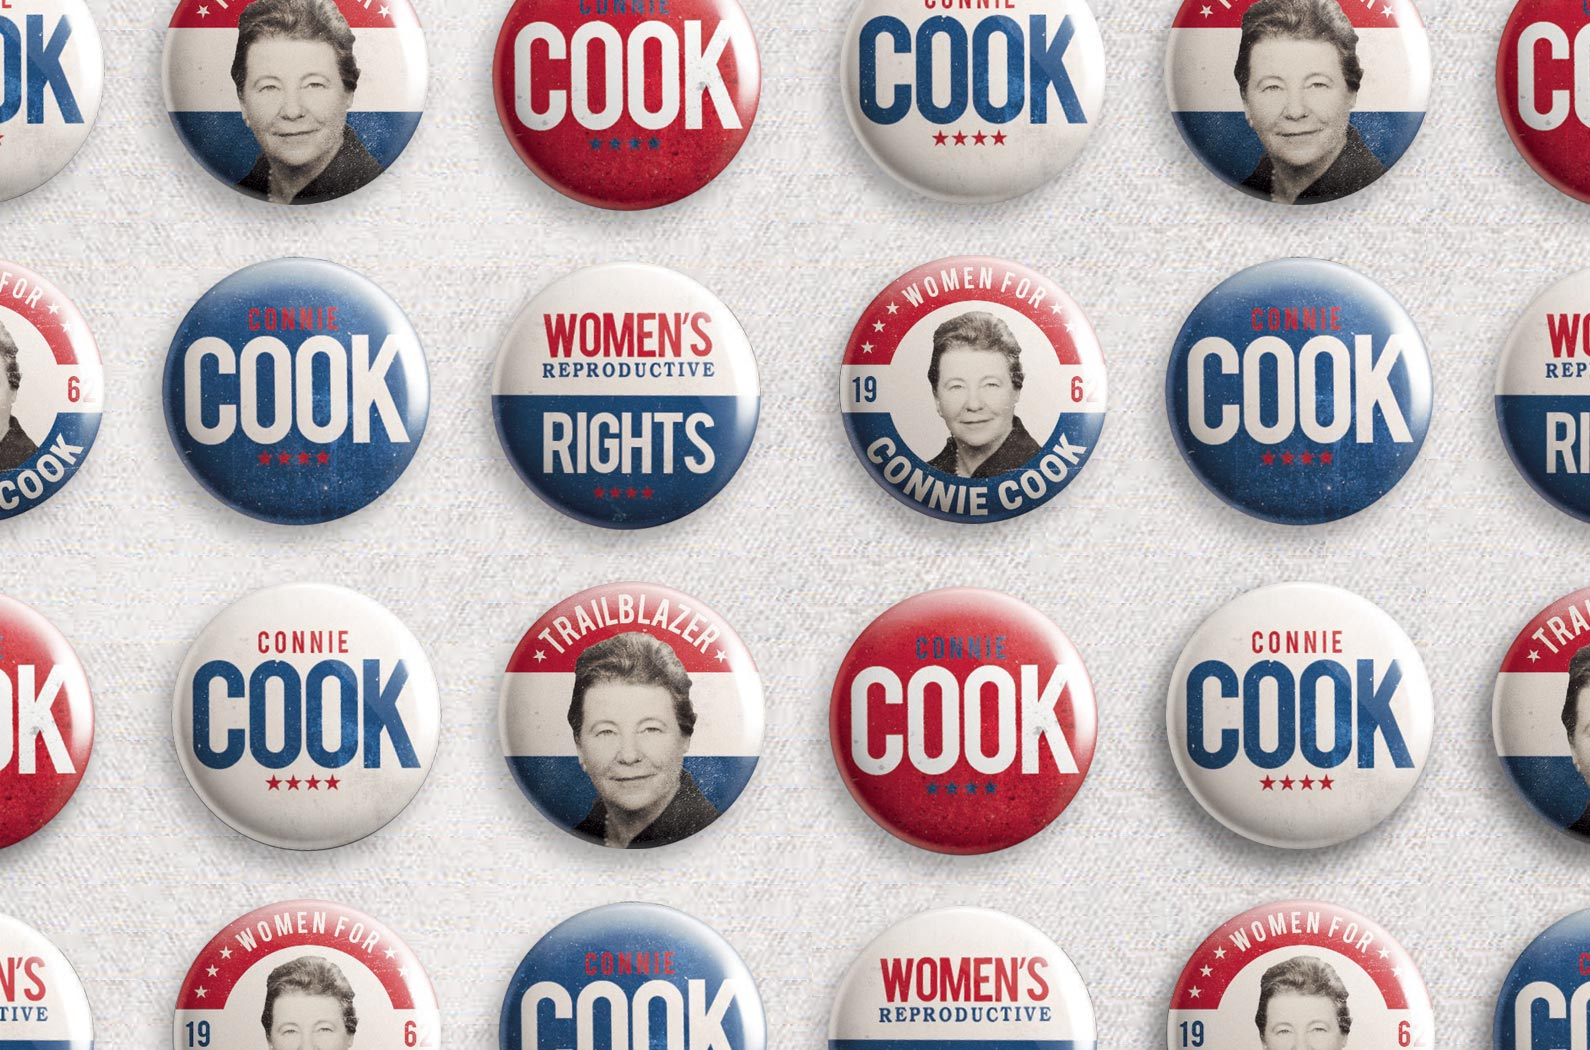 Cornell Law School FORUM Magazine Connie Cook Campaign Buttons